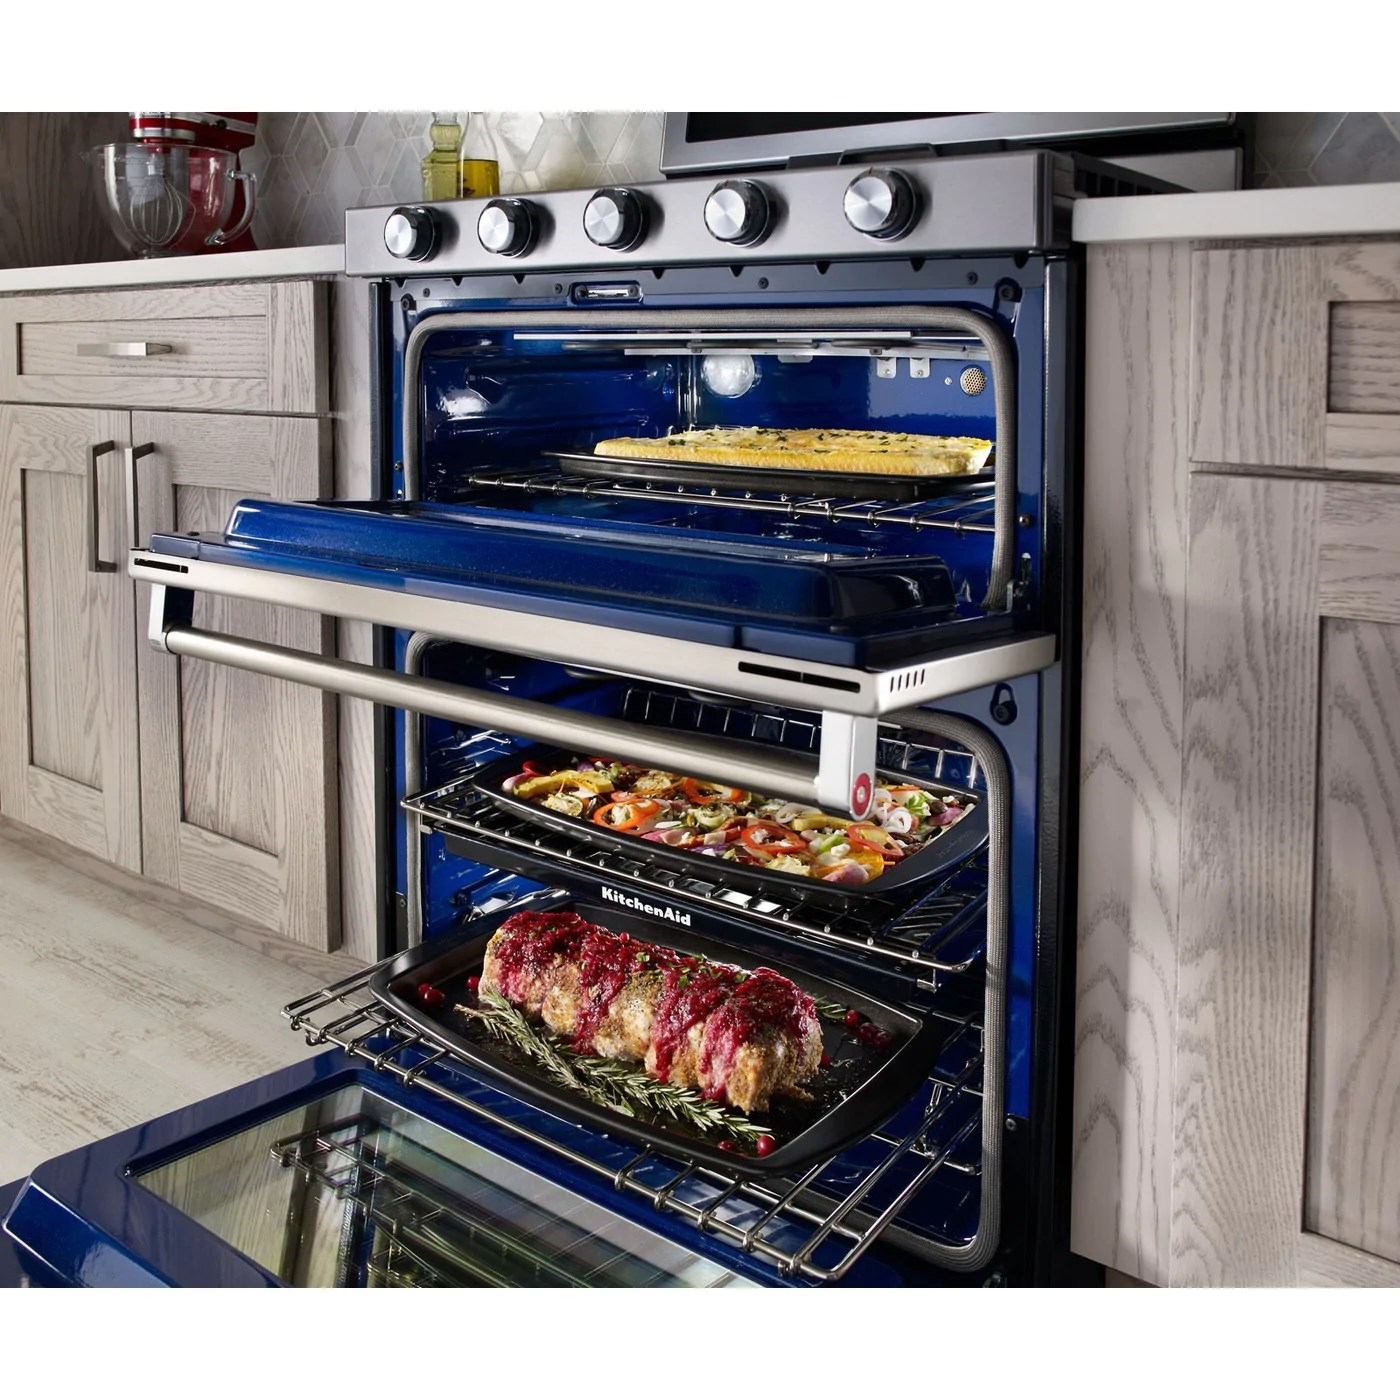 kitchenaid stainless steel freestanding double oven convection gas range 6 0 cu ft kfgd500ess